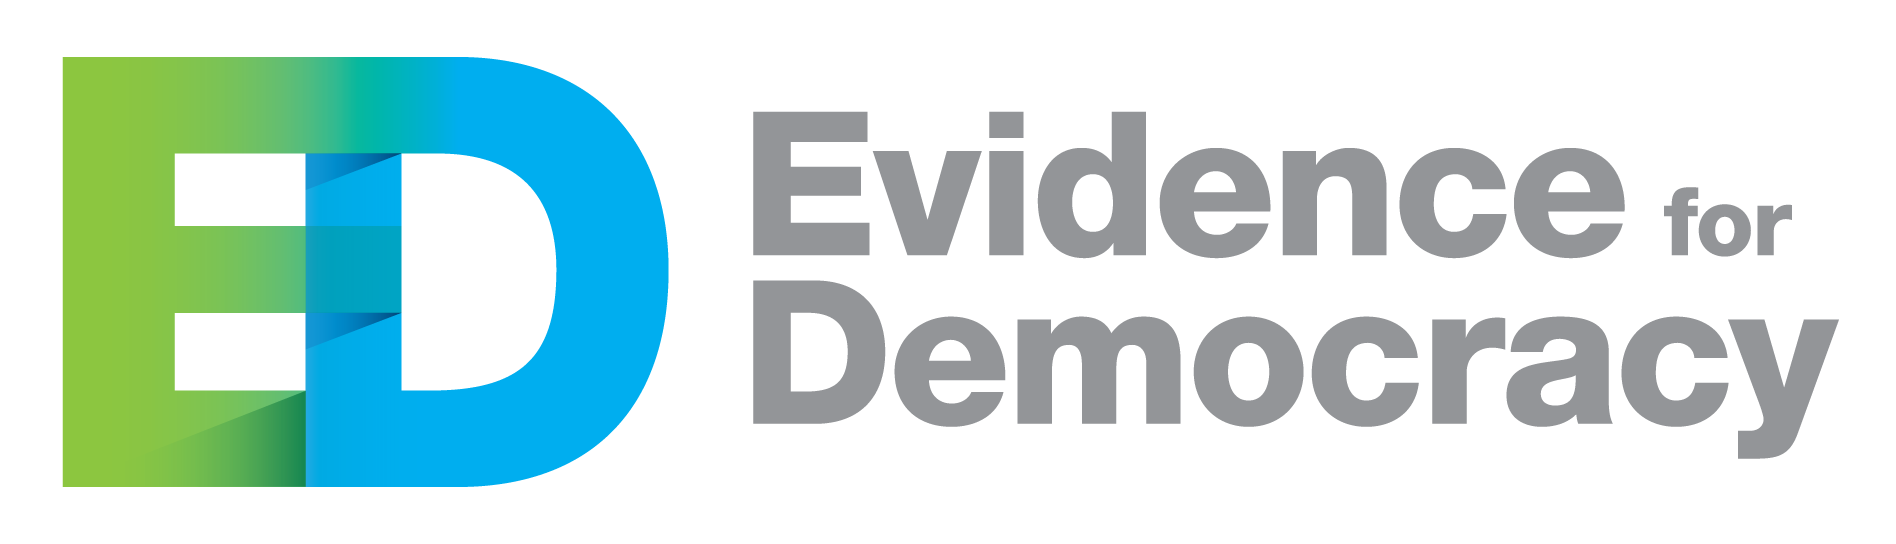 Evidence for Democracy logo